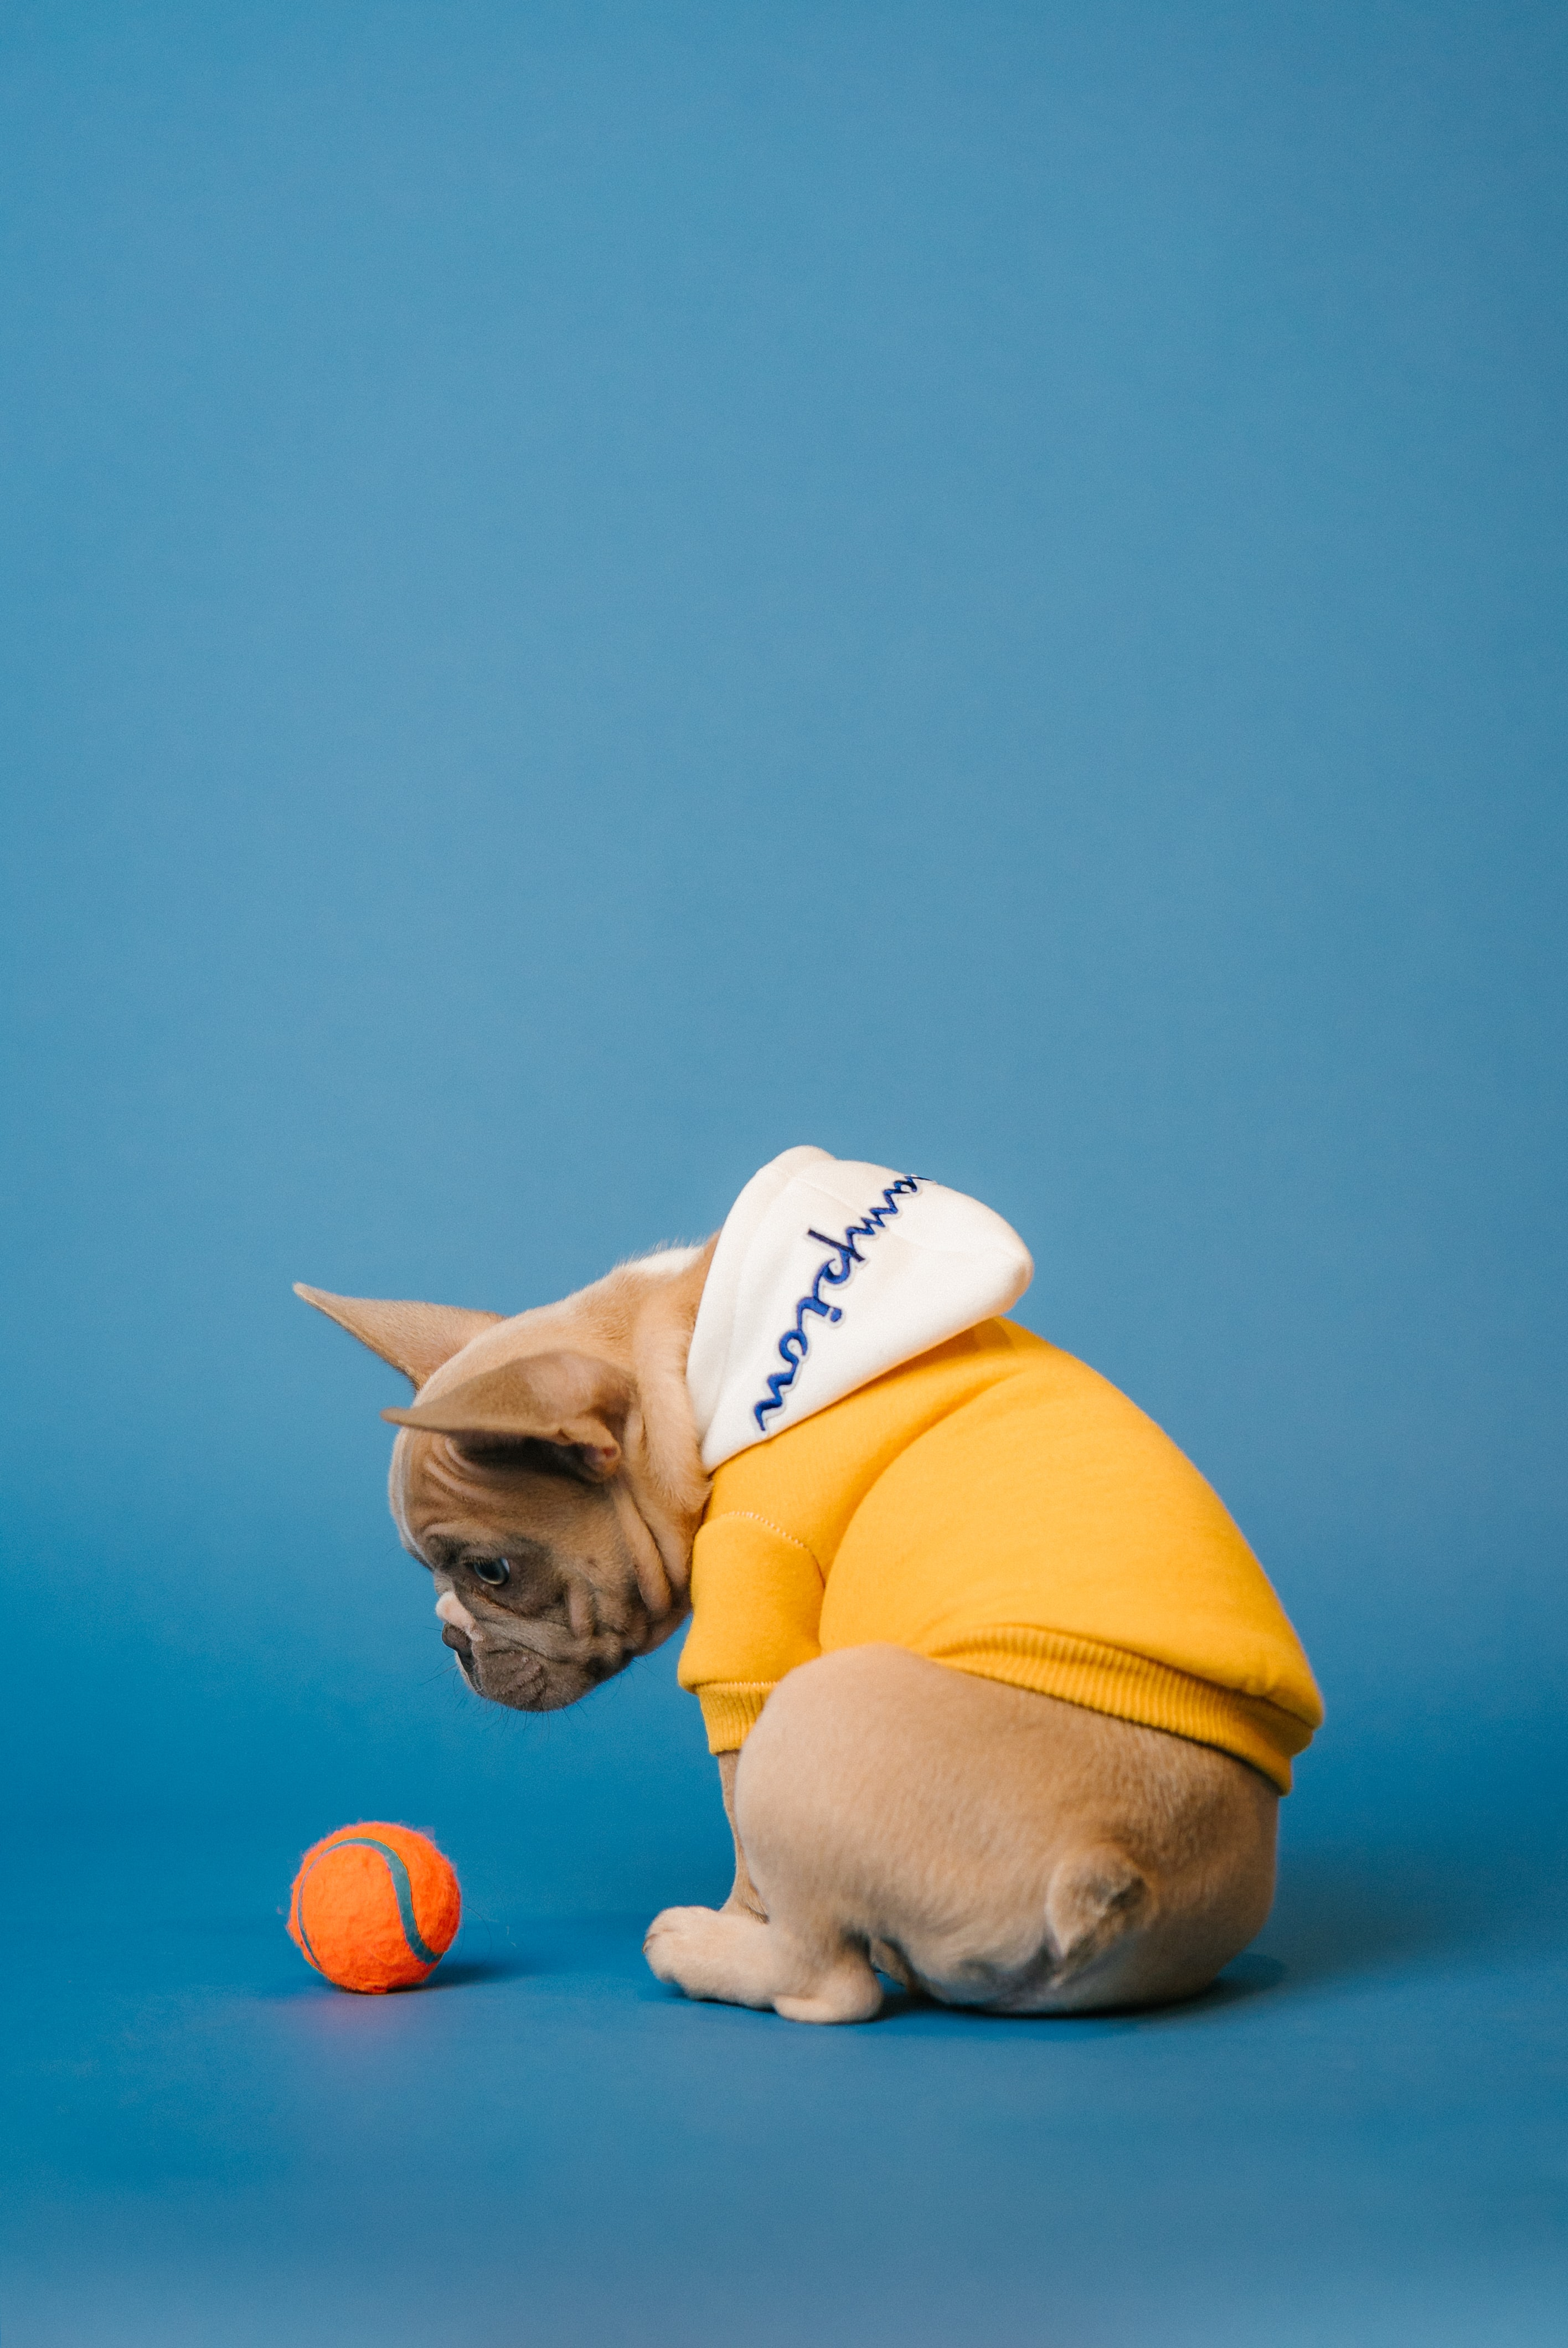 131202 download wallpaper Animals, Pug, Dog, Ball, Pet screensavers and pictures for free